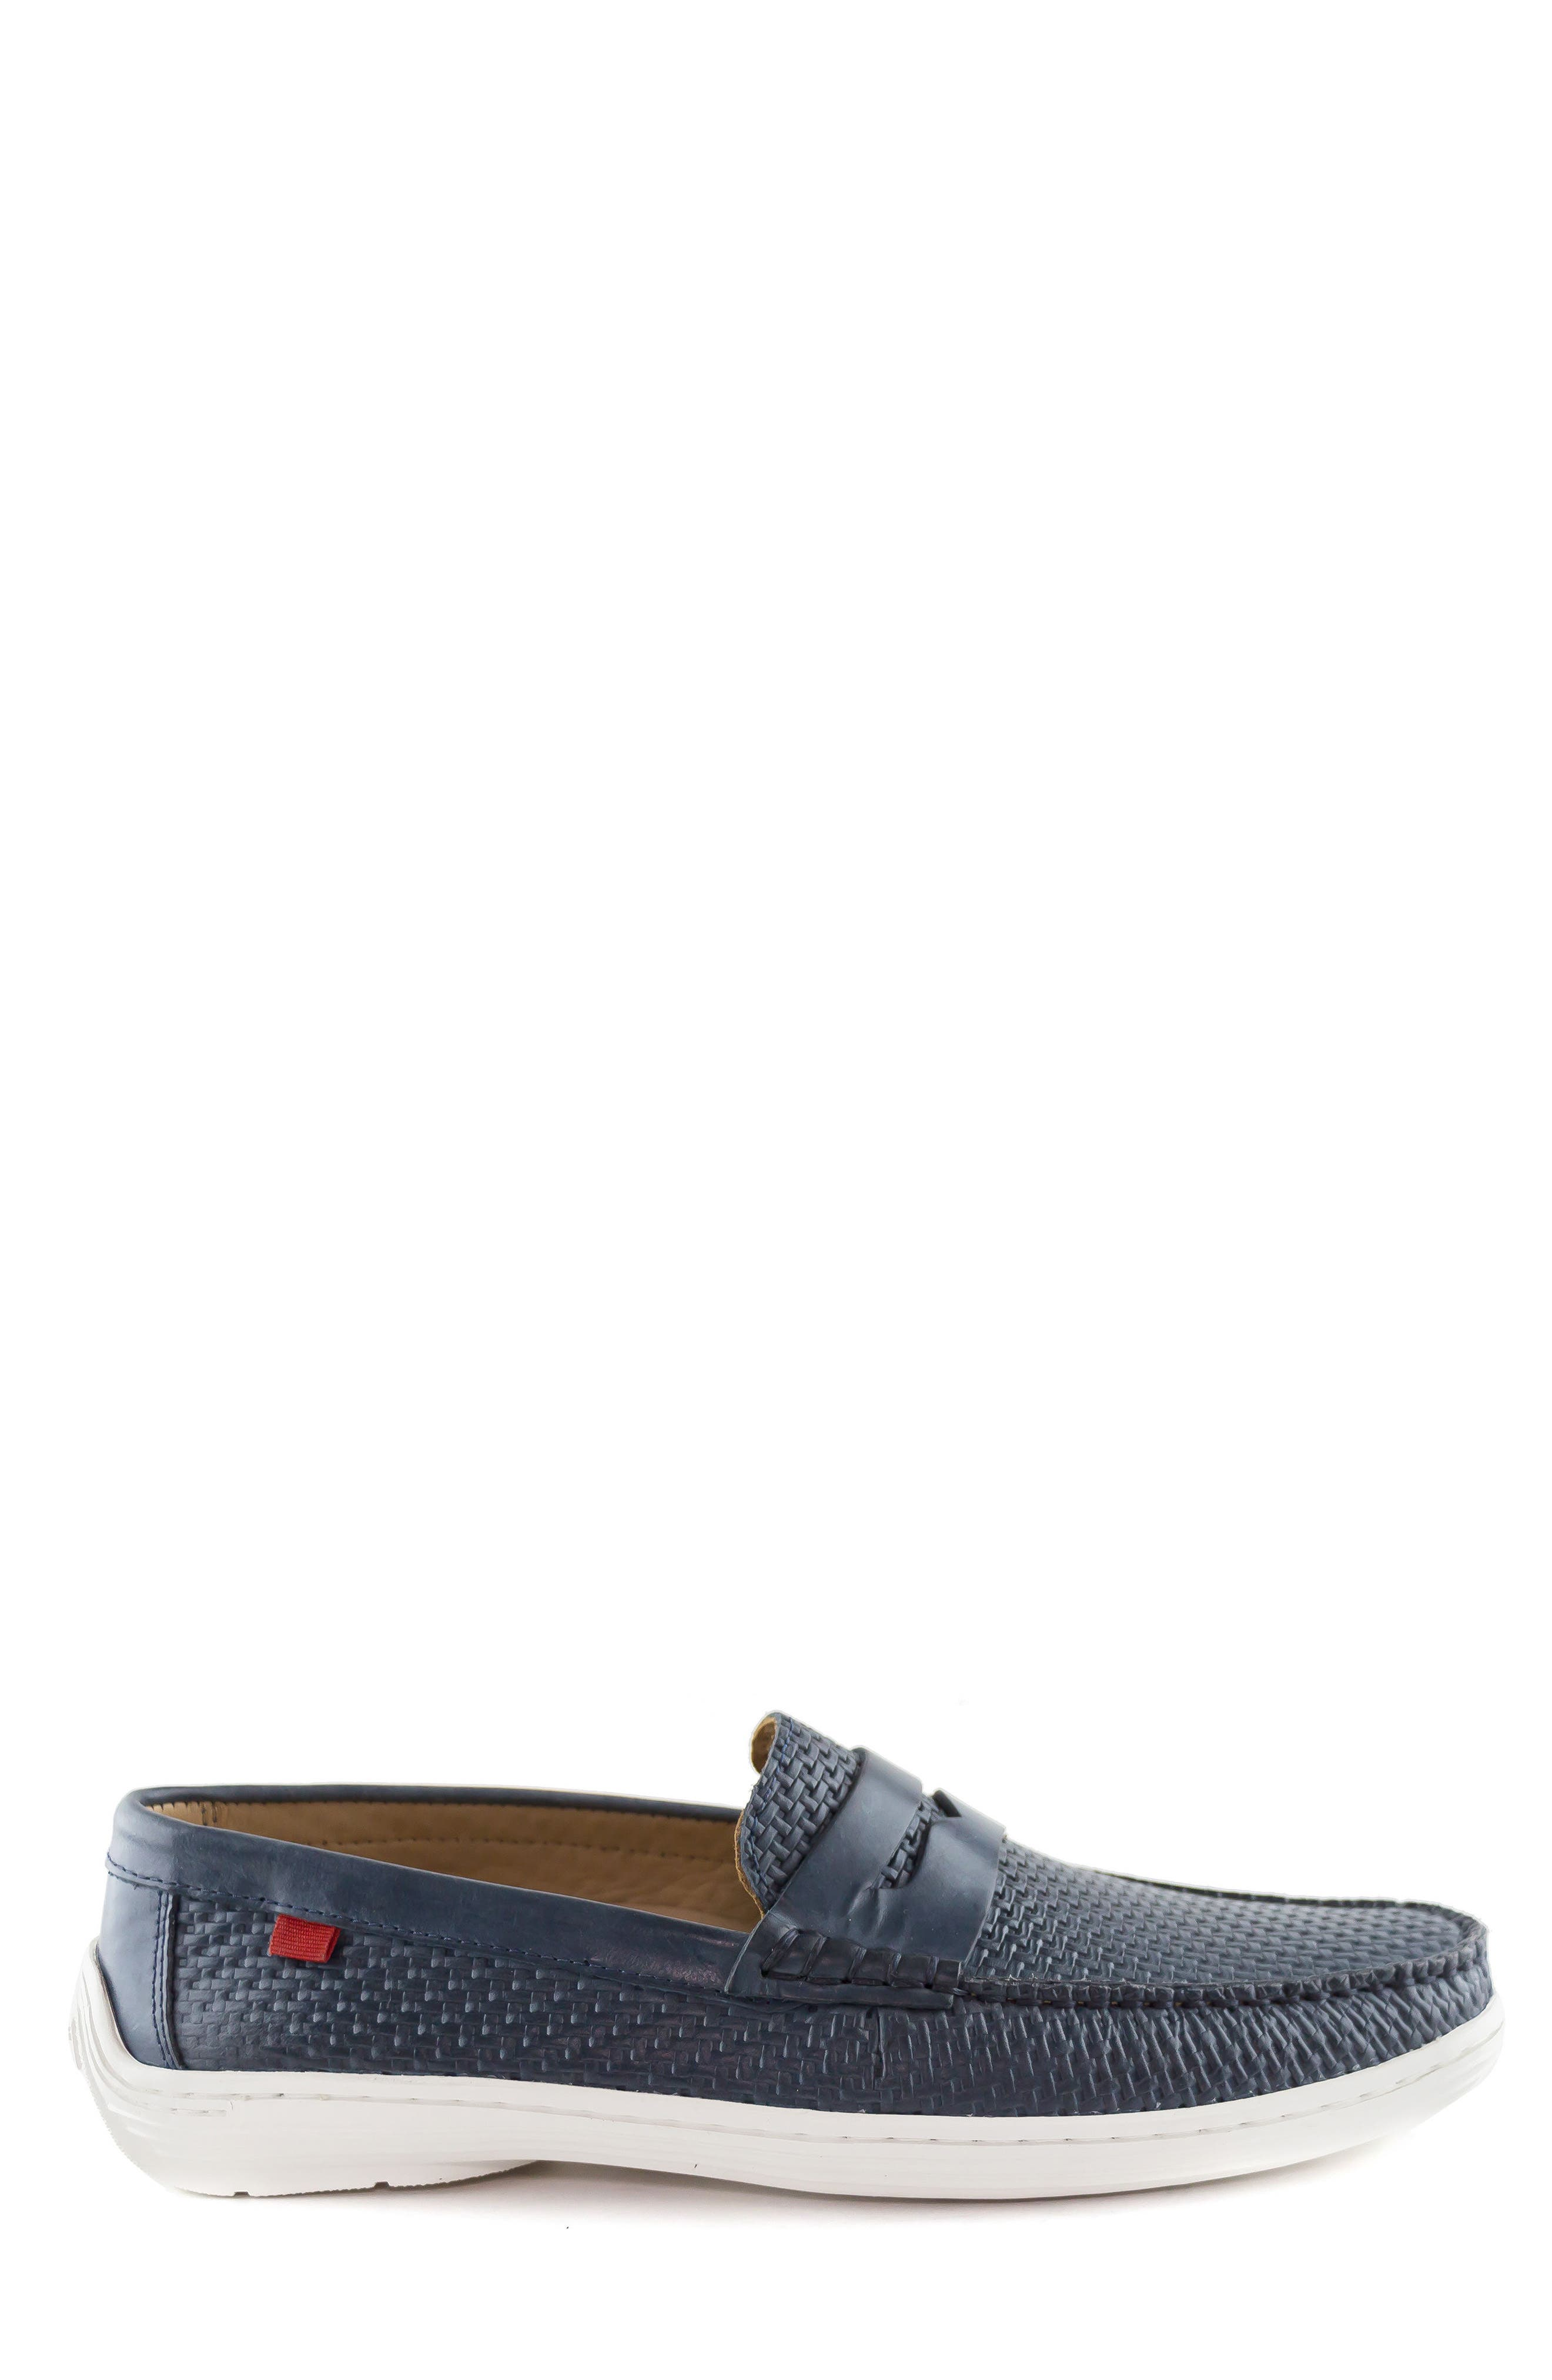 Atlantic Penny Loafer,                             Alternate thumbnail 20, color,